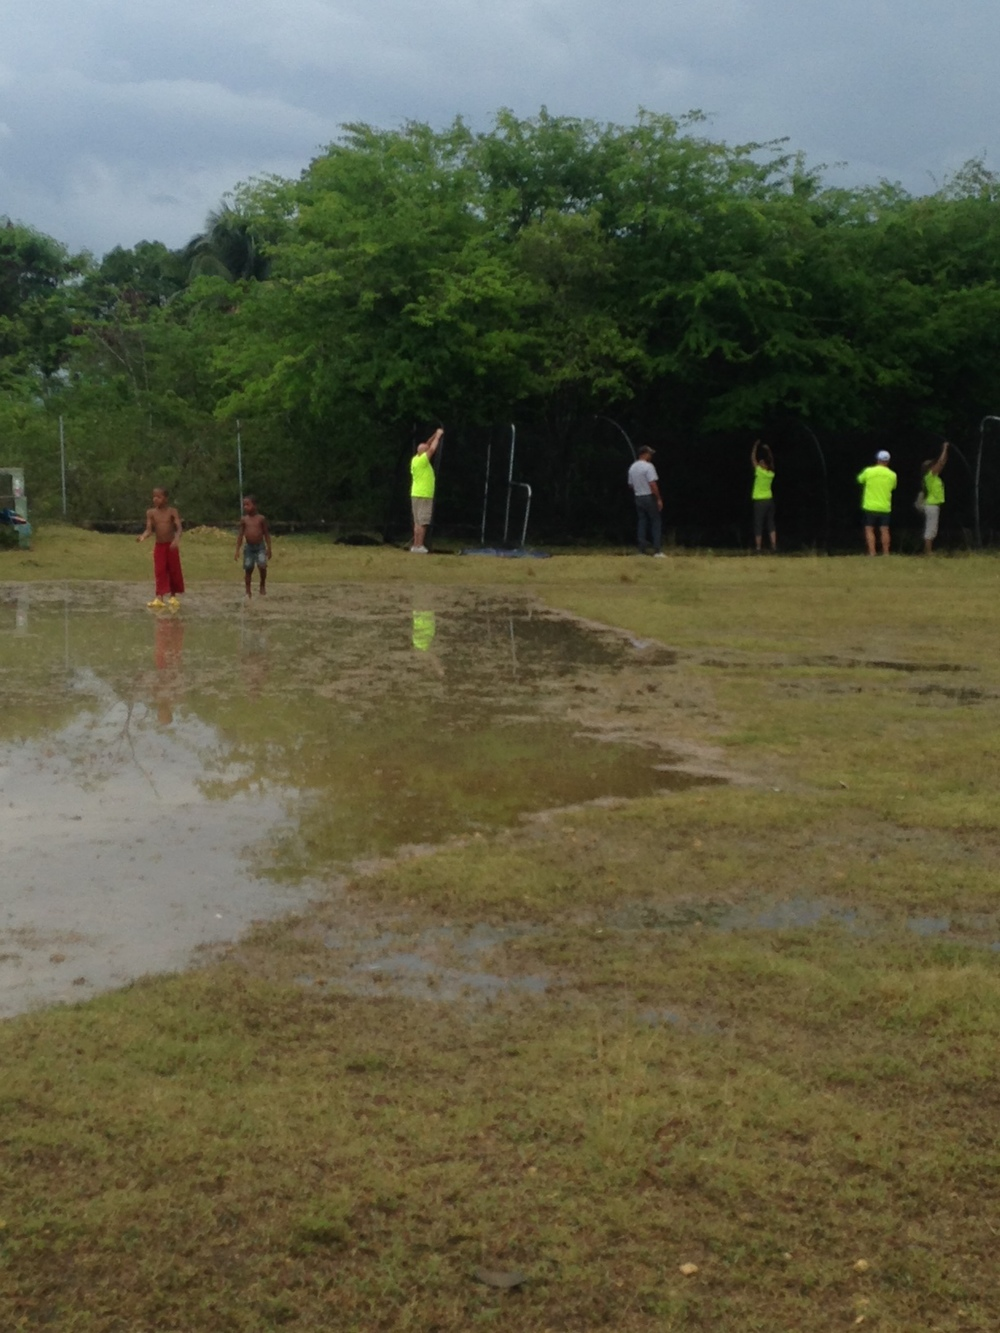 We came back this afternoon to find the field completely soaked--with kids happily running through it!